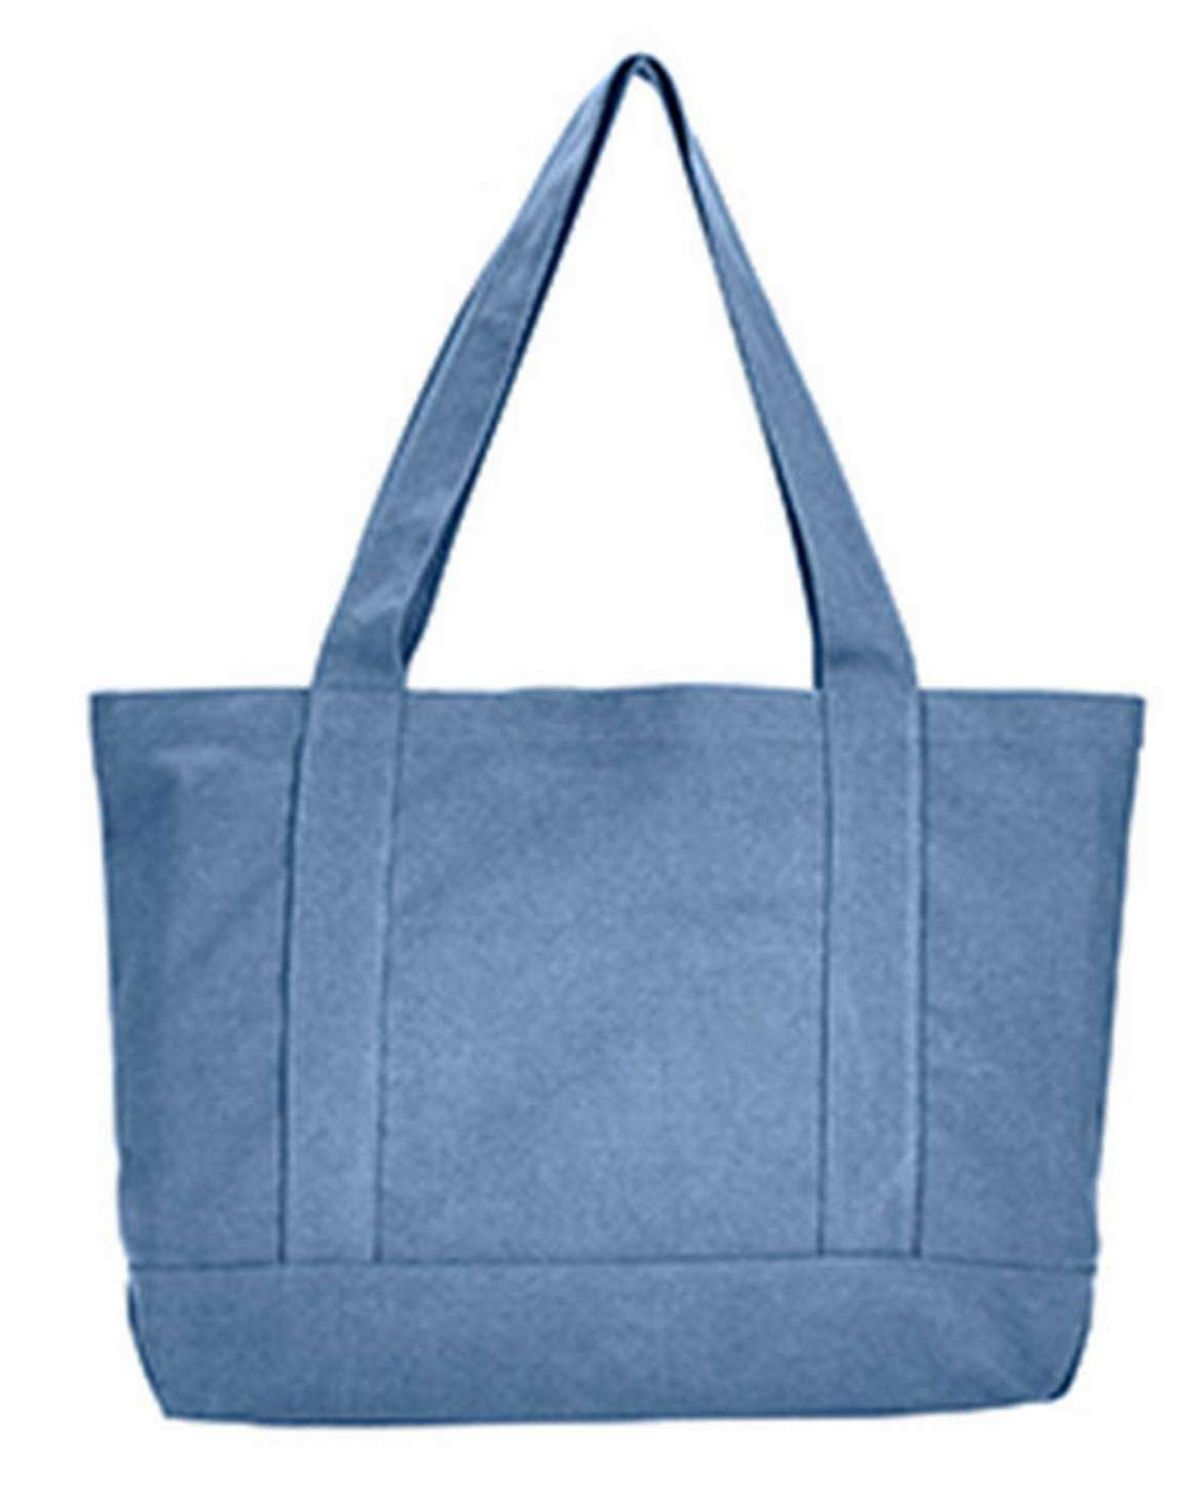 Liberty Bags 8870 Seaside Cotton Canvas Pigment-Dyed Boat Tote